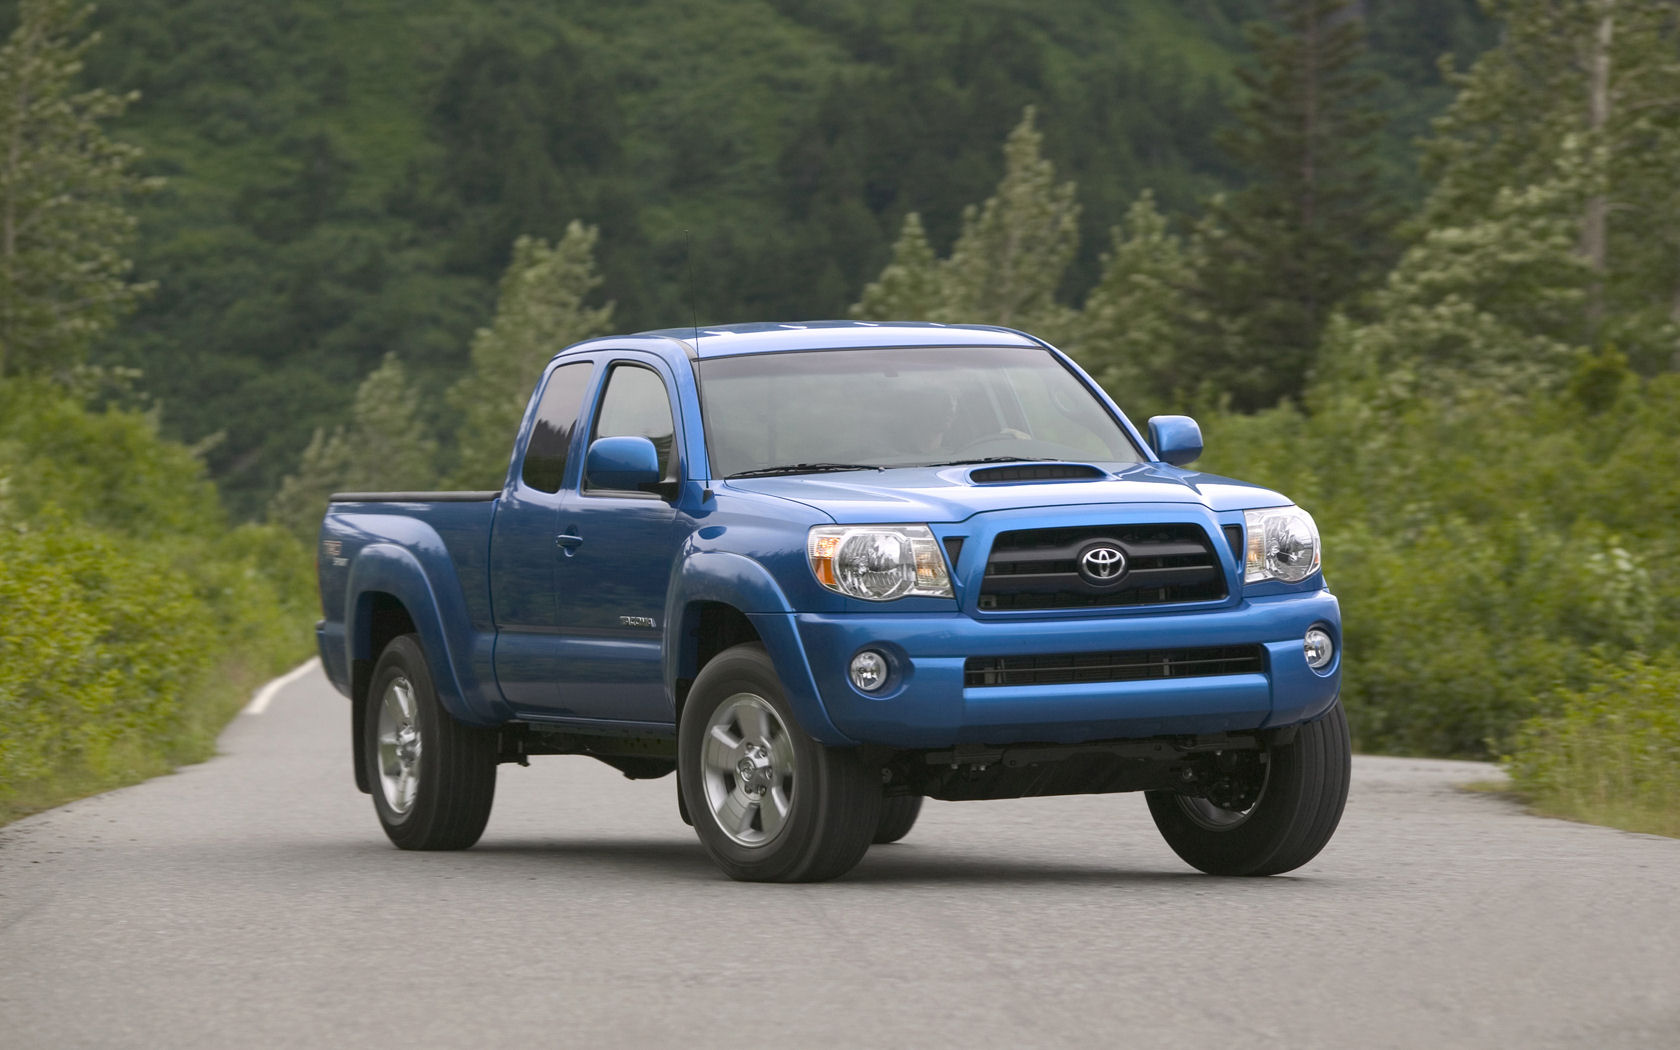 Toyota Tacoma Wallpaper 4900 Hd Wallpapers in Cars   Imagescicom 1680x1050